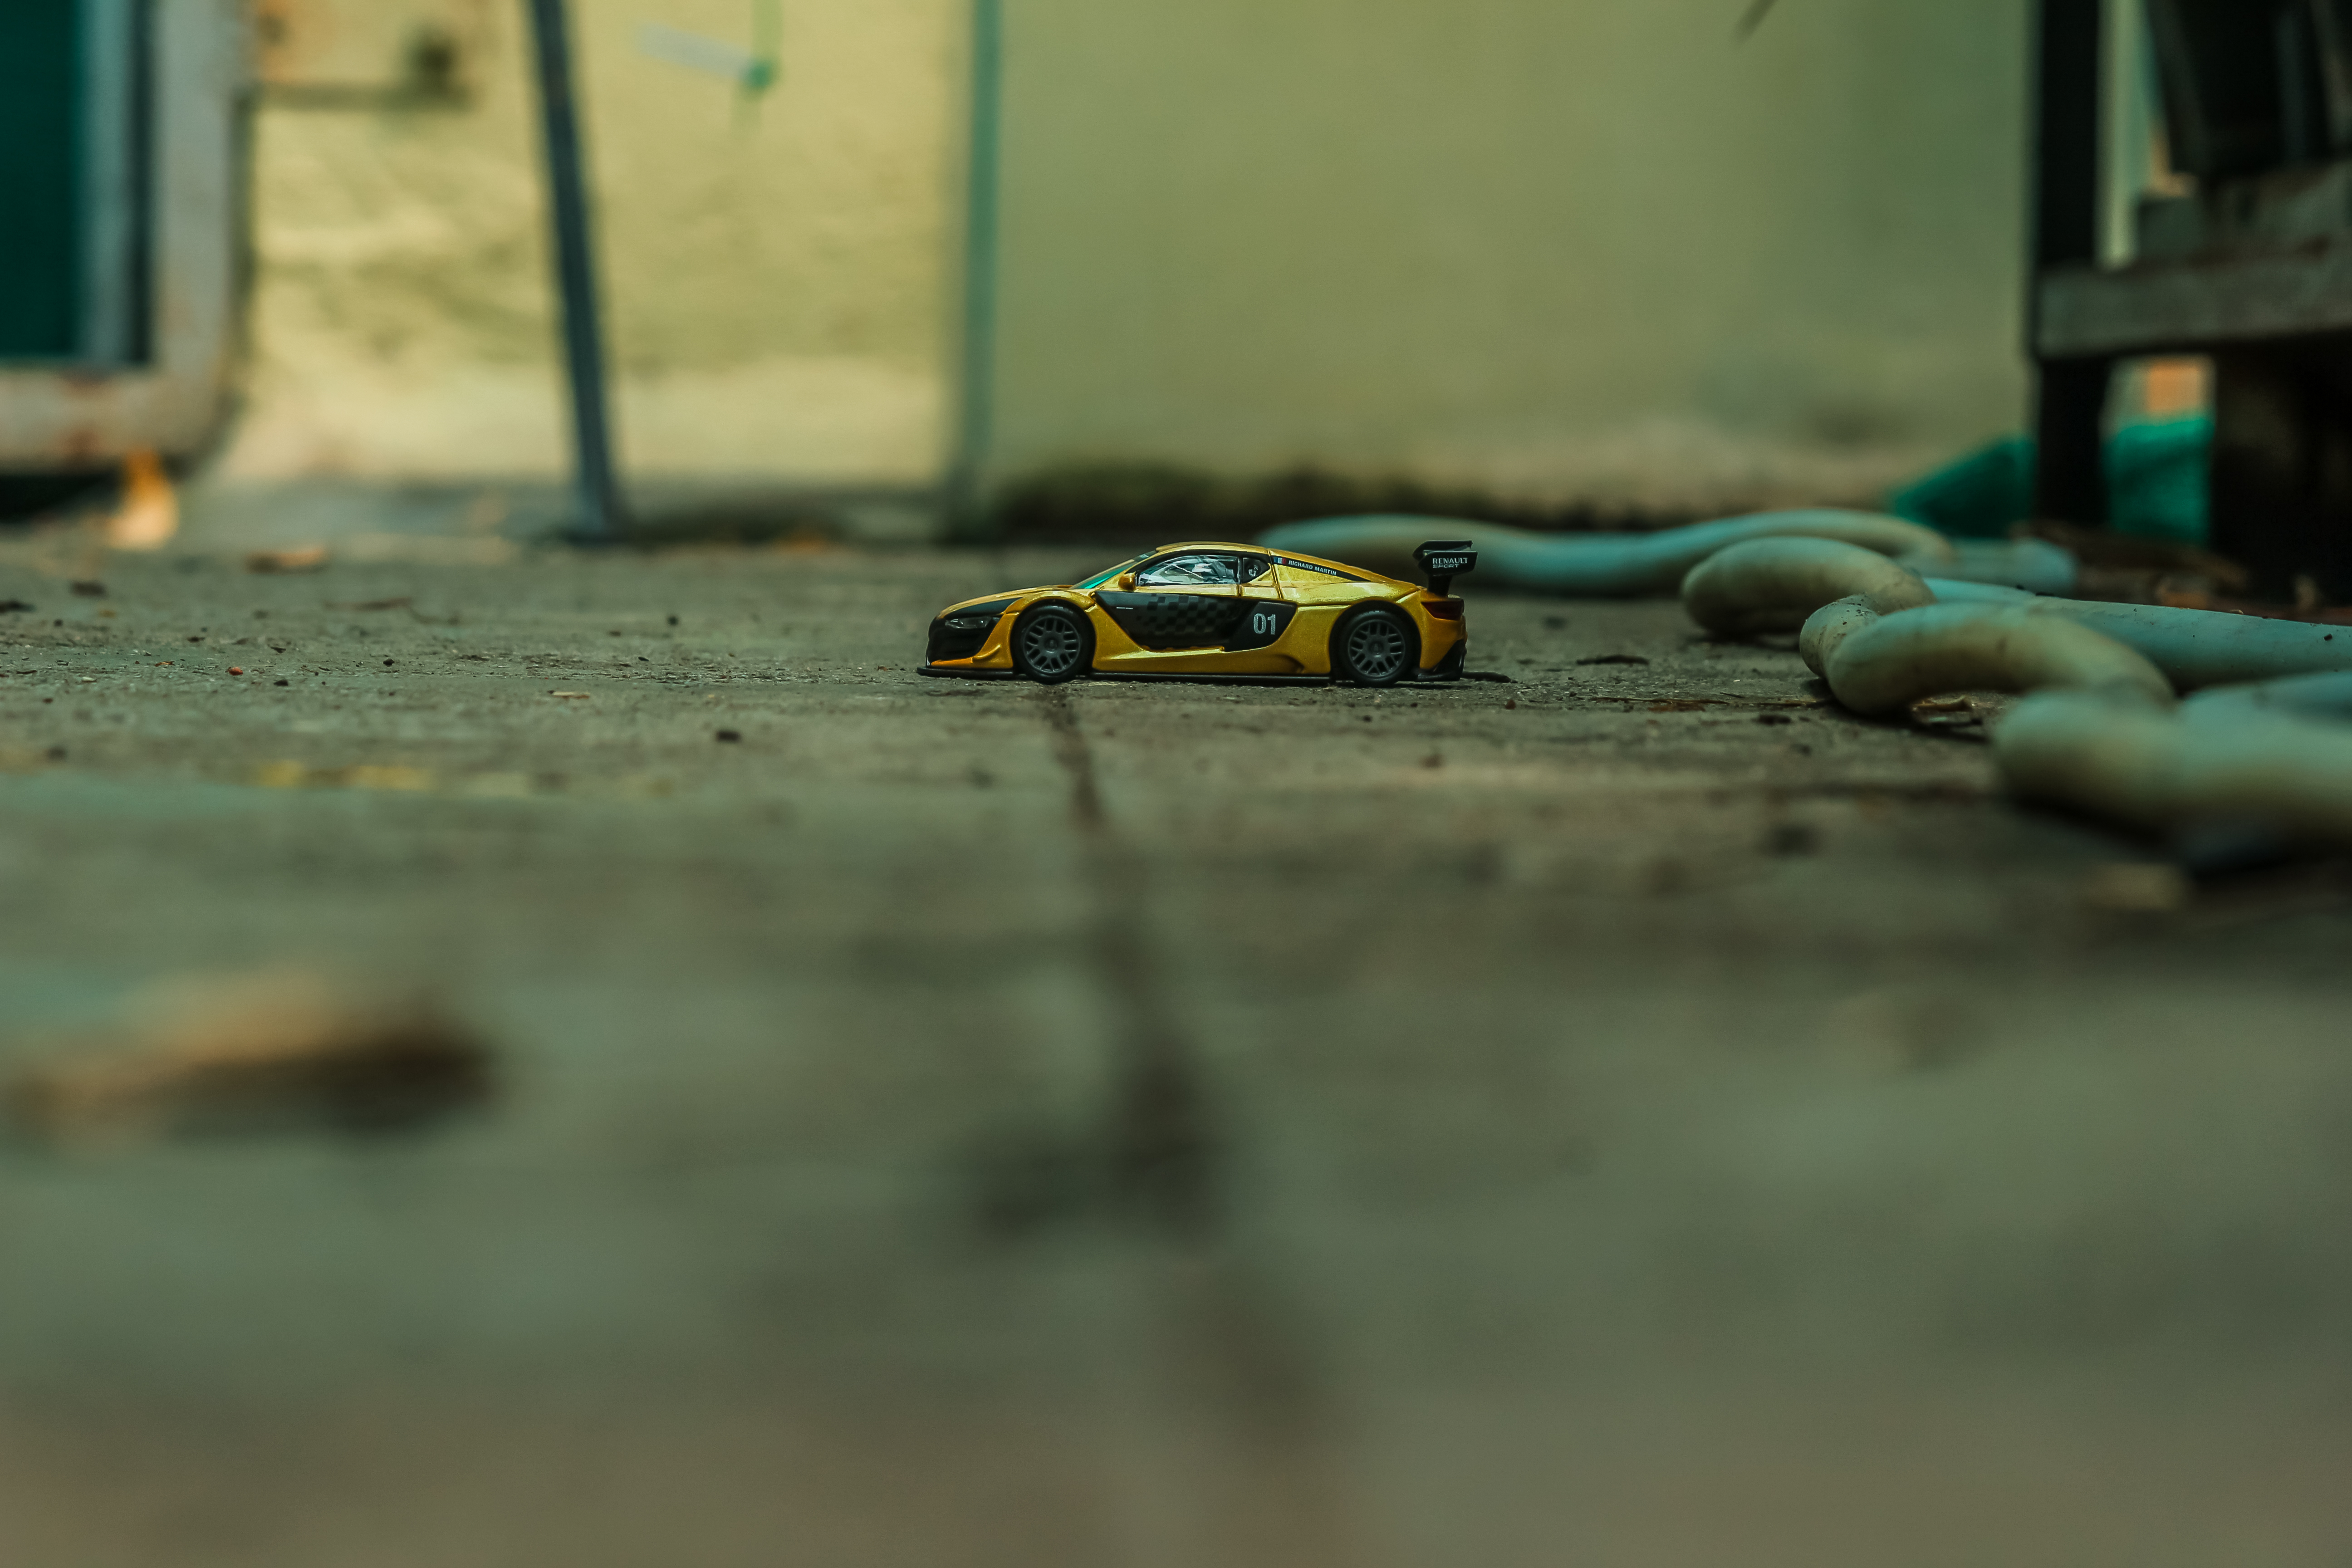 I Shot The Diecast Race Collezione In The Greenhouse.